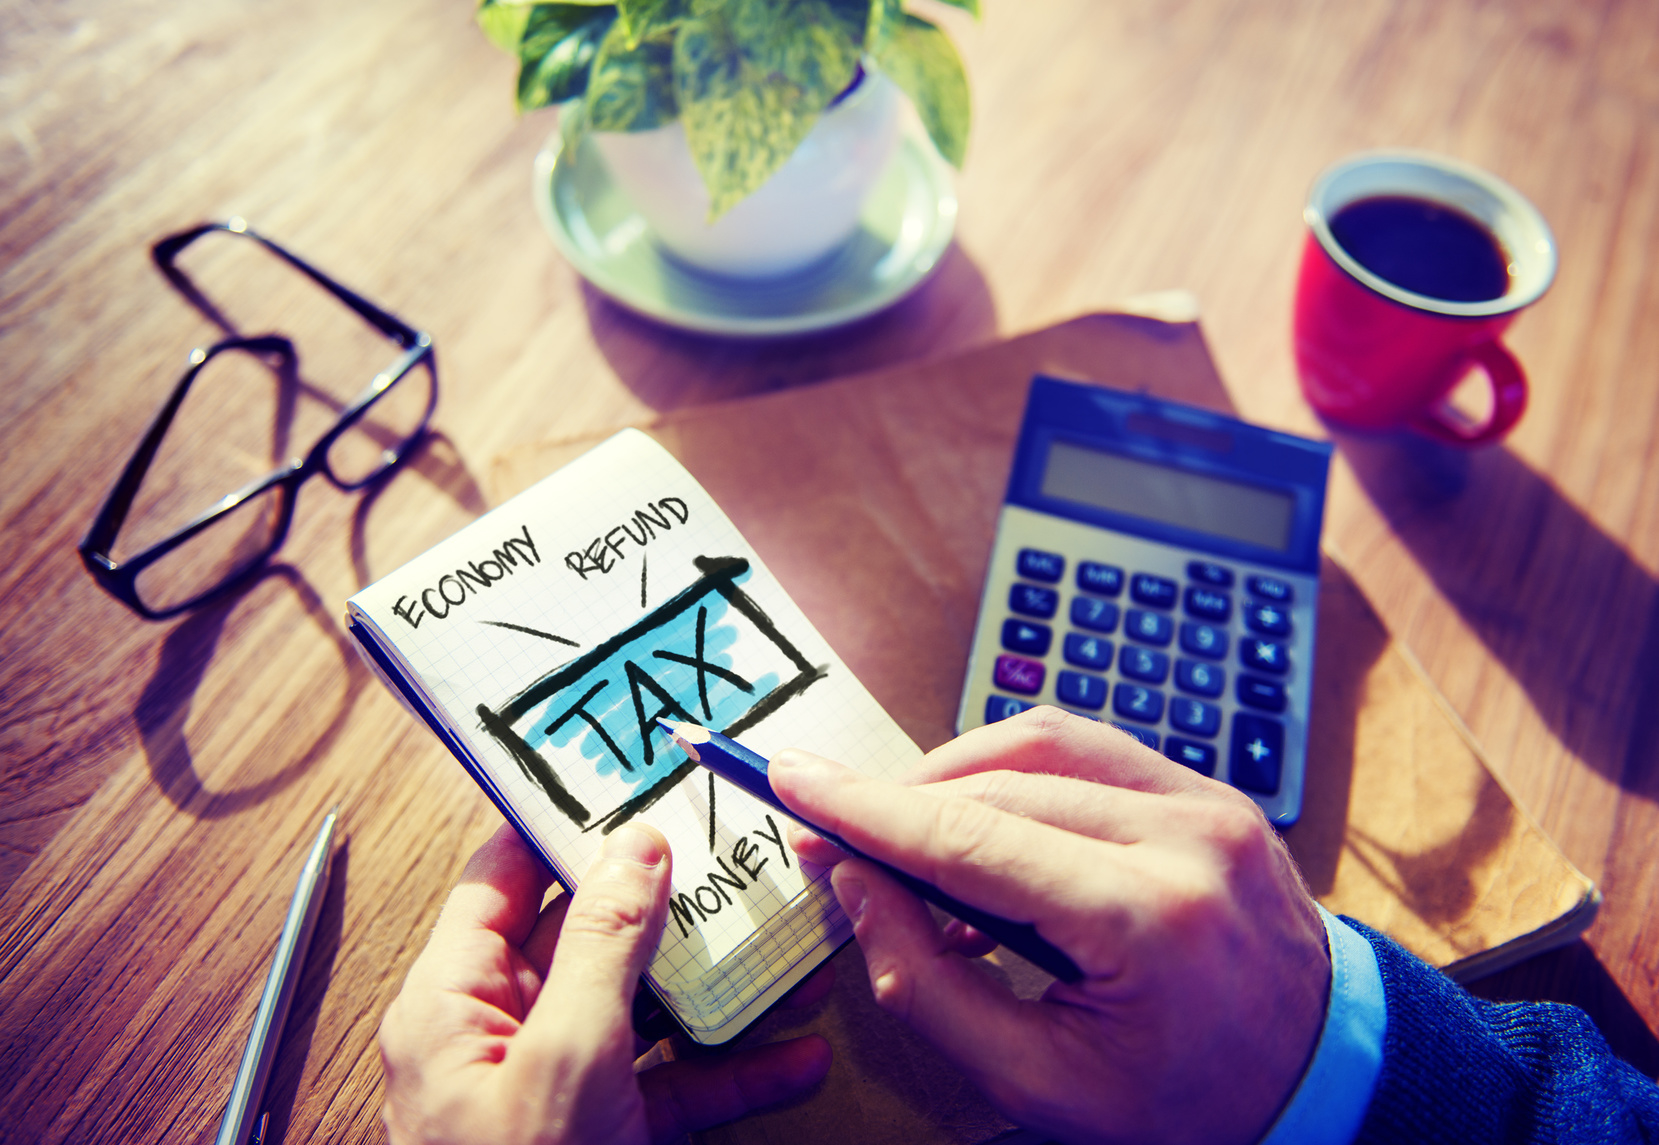 Accounting, Income Tax, and Consulting Services, Inc. - Colorado Springs, CO 80909 - (719)597-6292 | ShowMeLocal.com